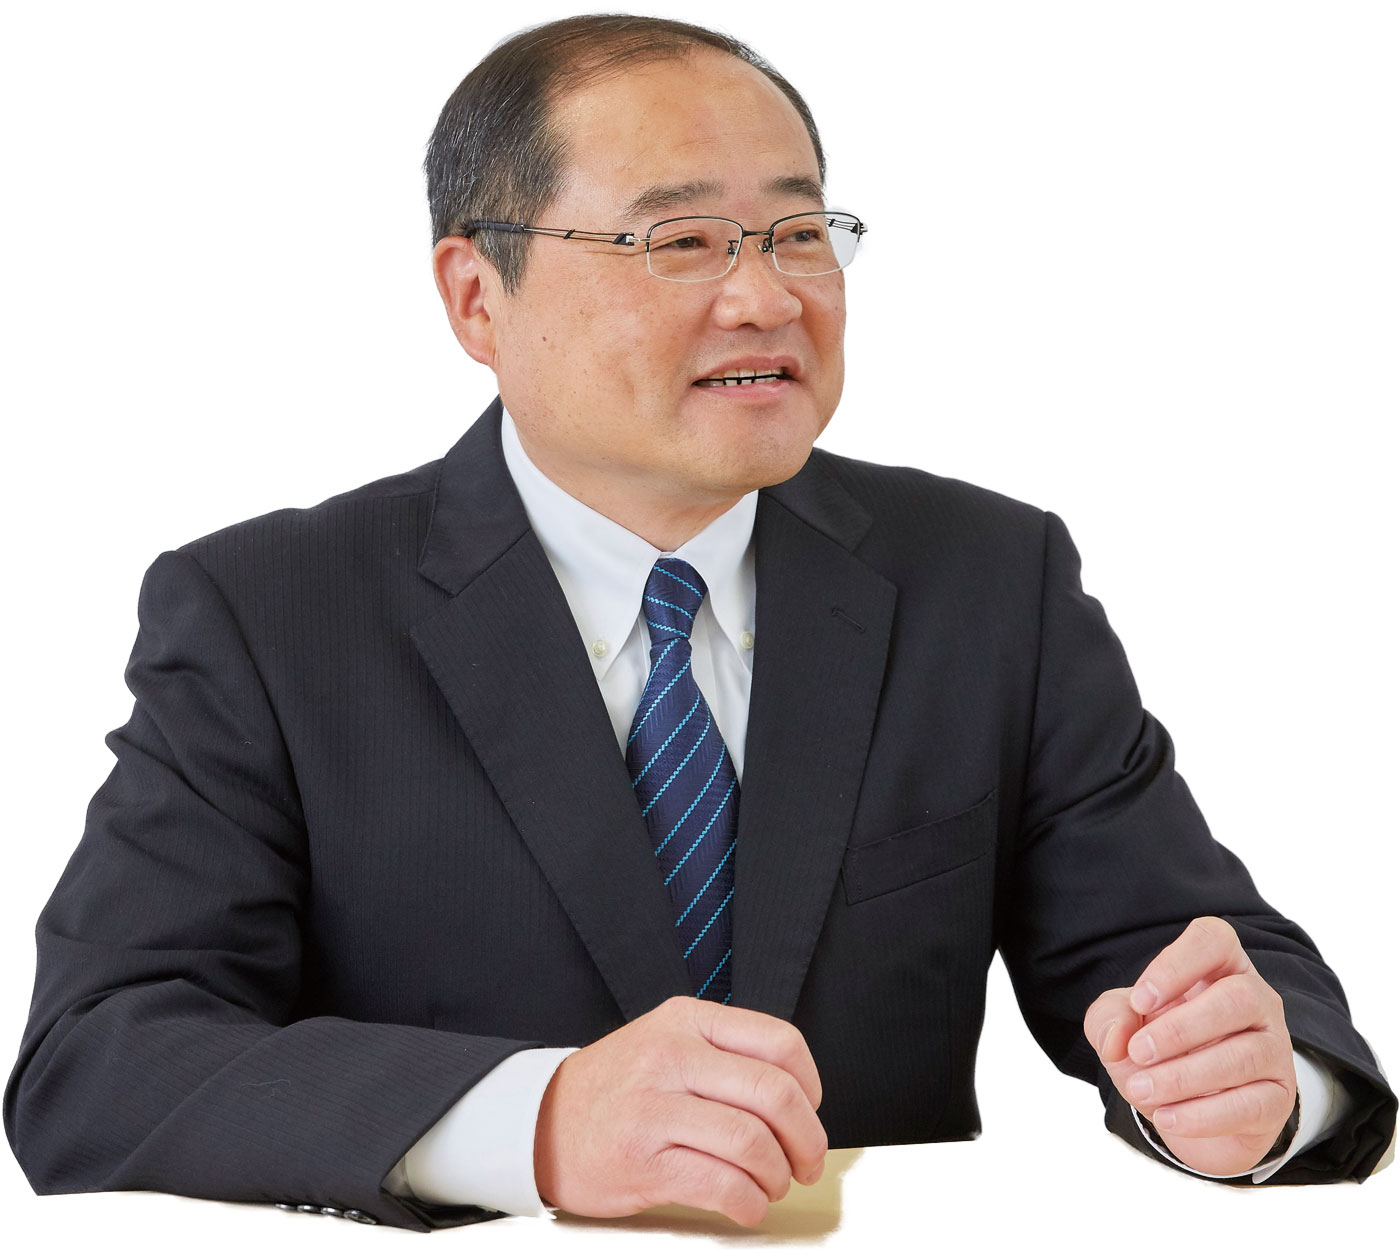 Koki Tabuchi [Managing Executive Officer, Elastomers & Performance Plastics]